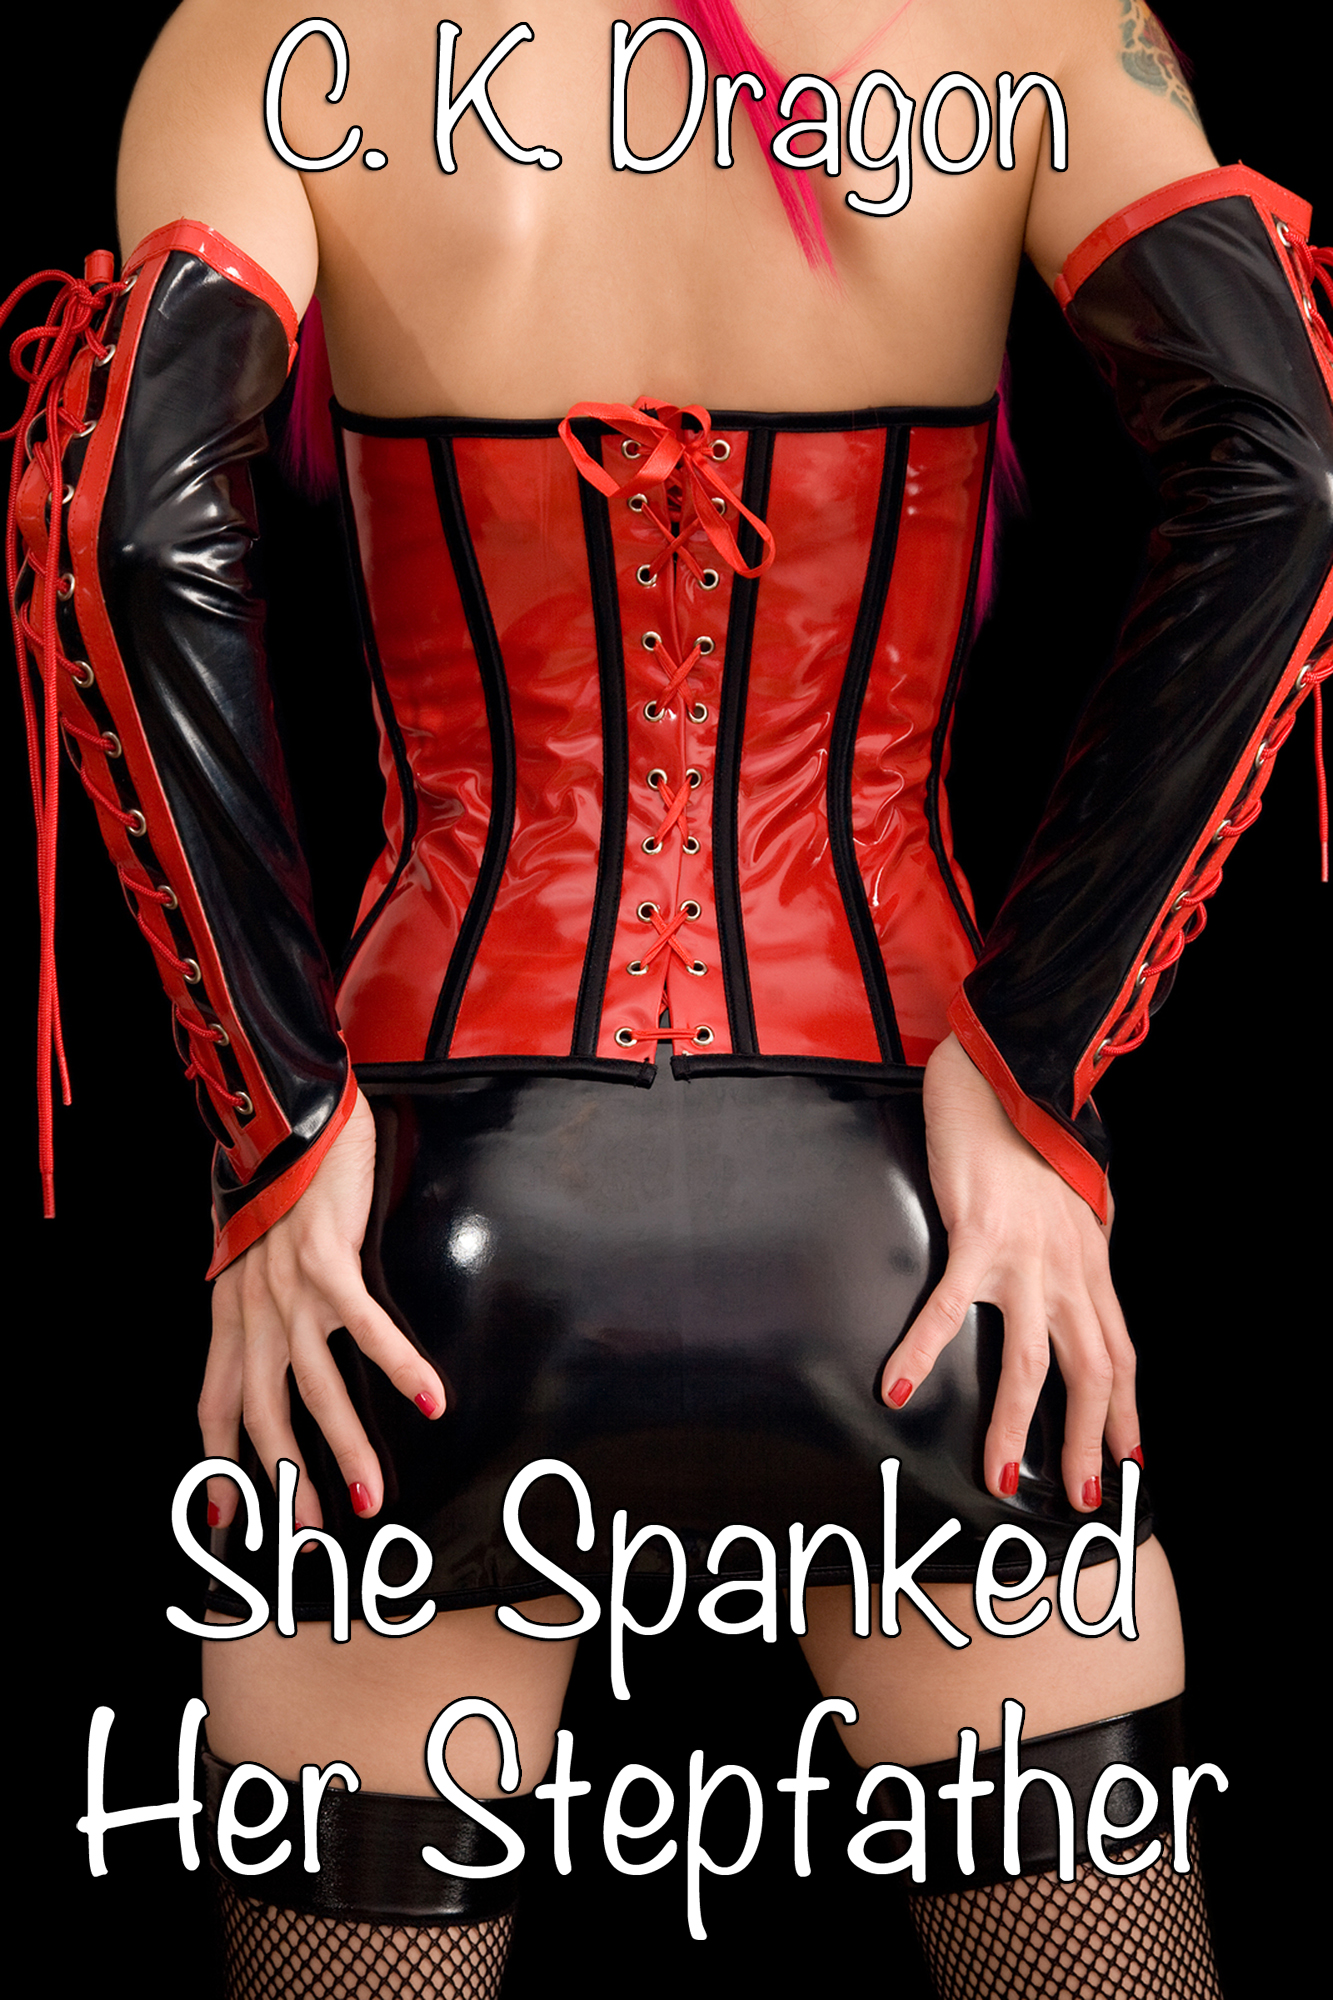 She Spanked Her Stepfather